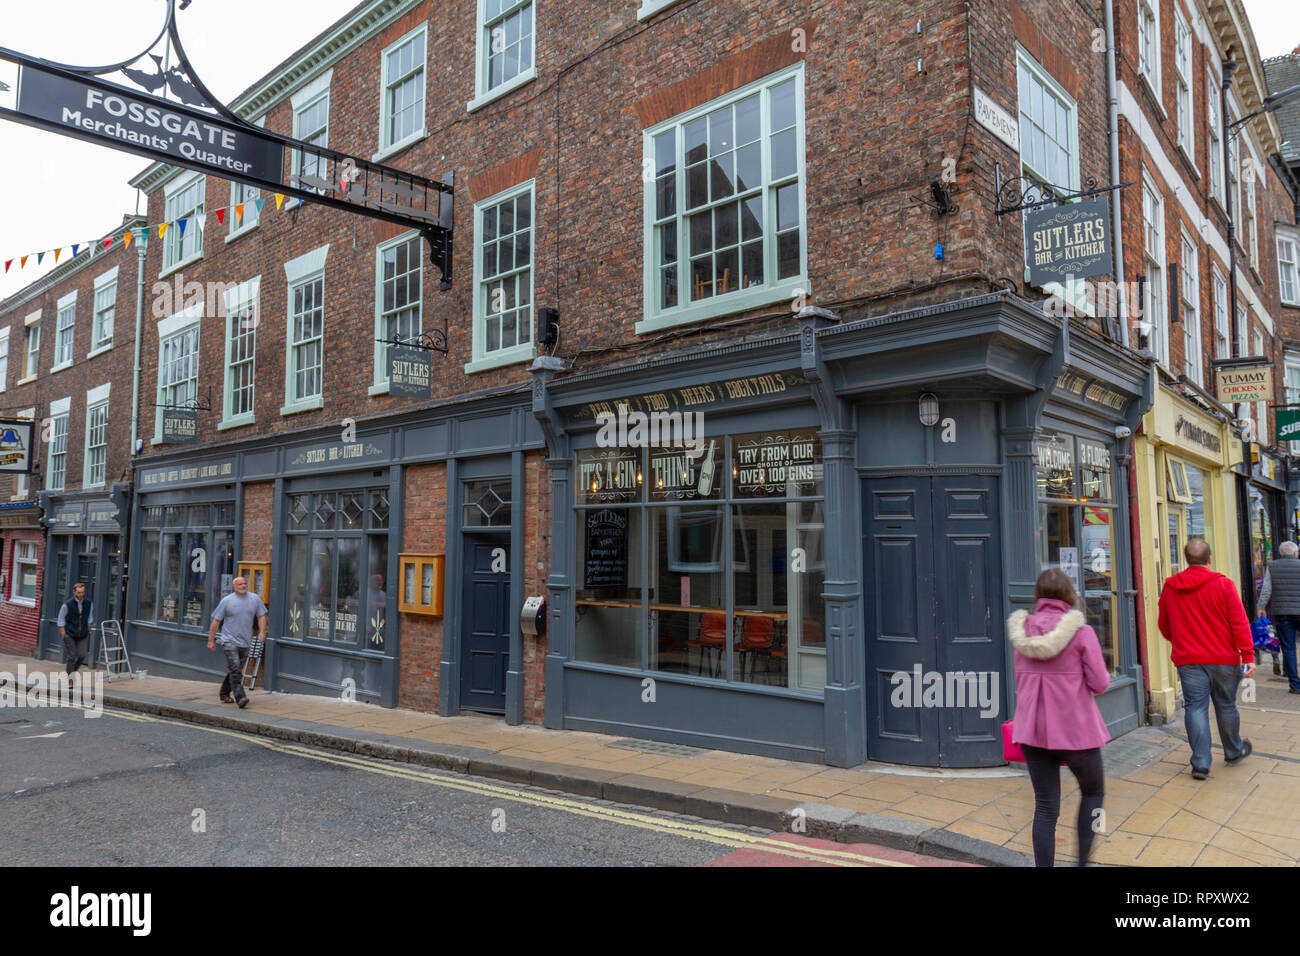 Sutlers Bar & Kitchen, Fossgate, City of York, UK. - Stock Image